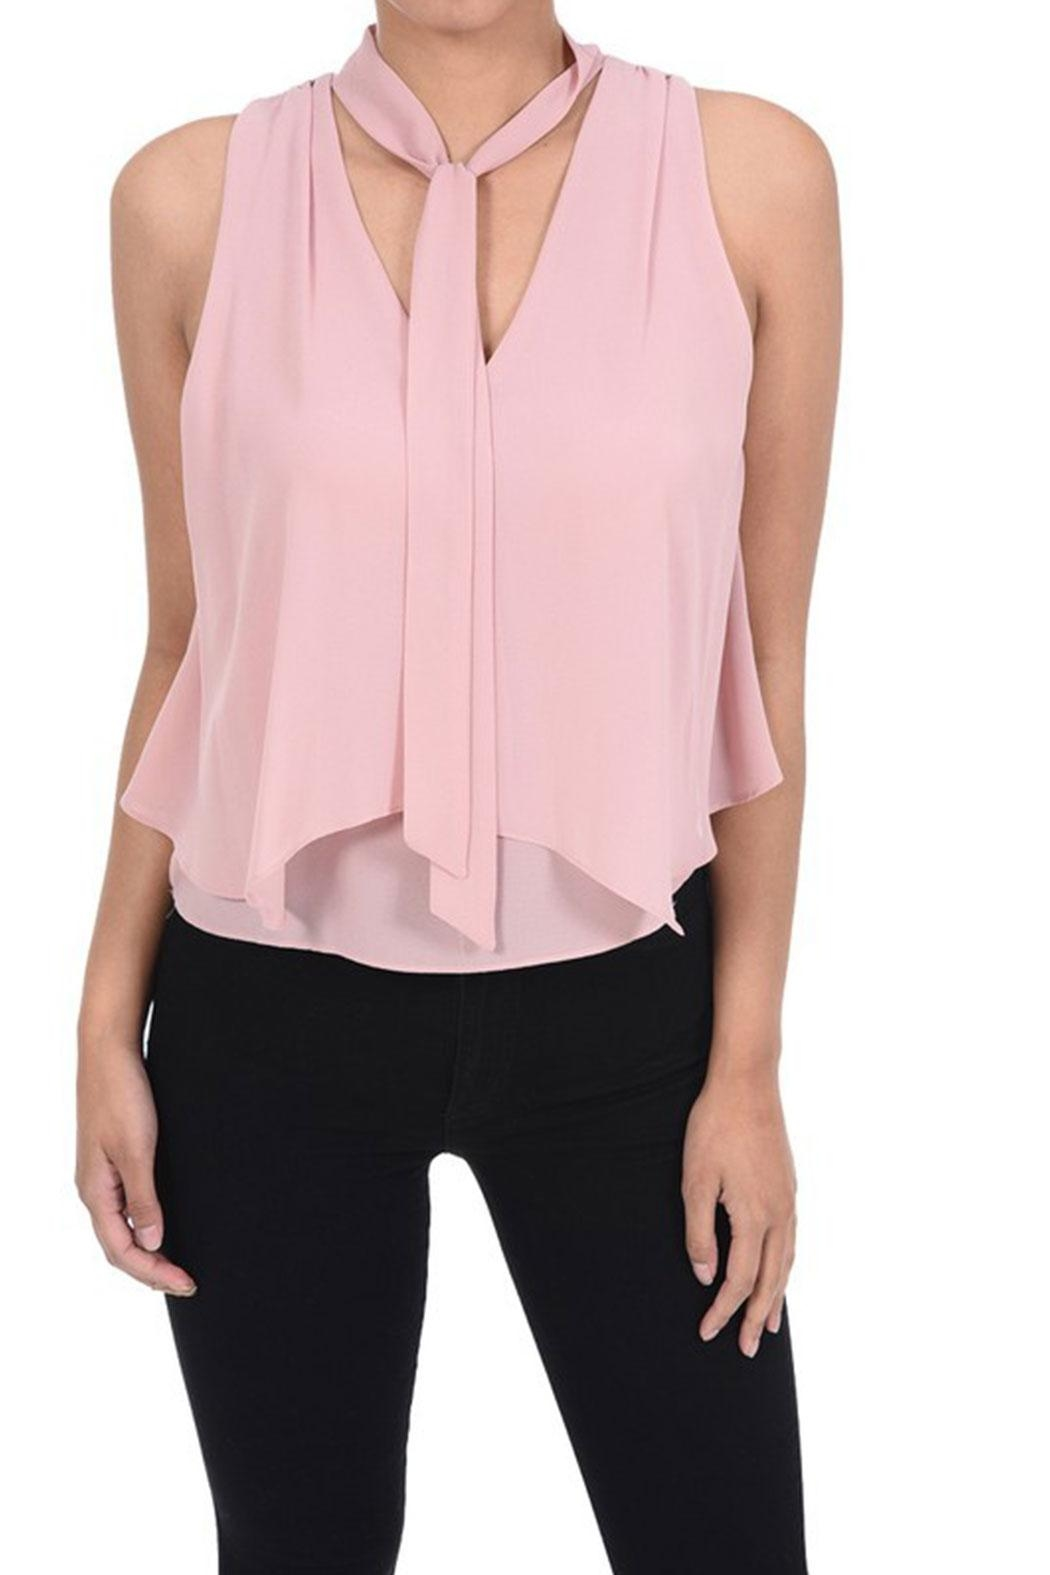 MICHEL Tie Neck Top - Front Cropped Image